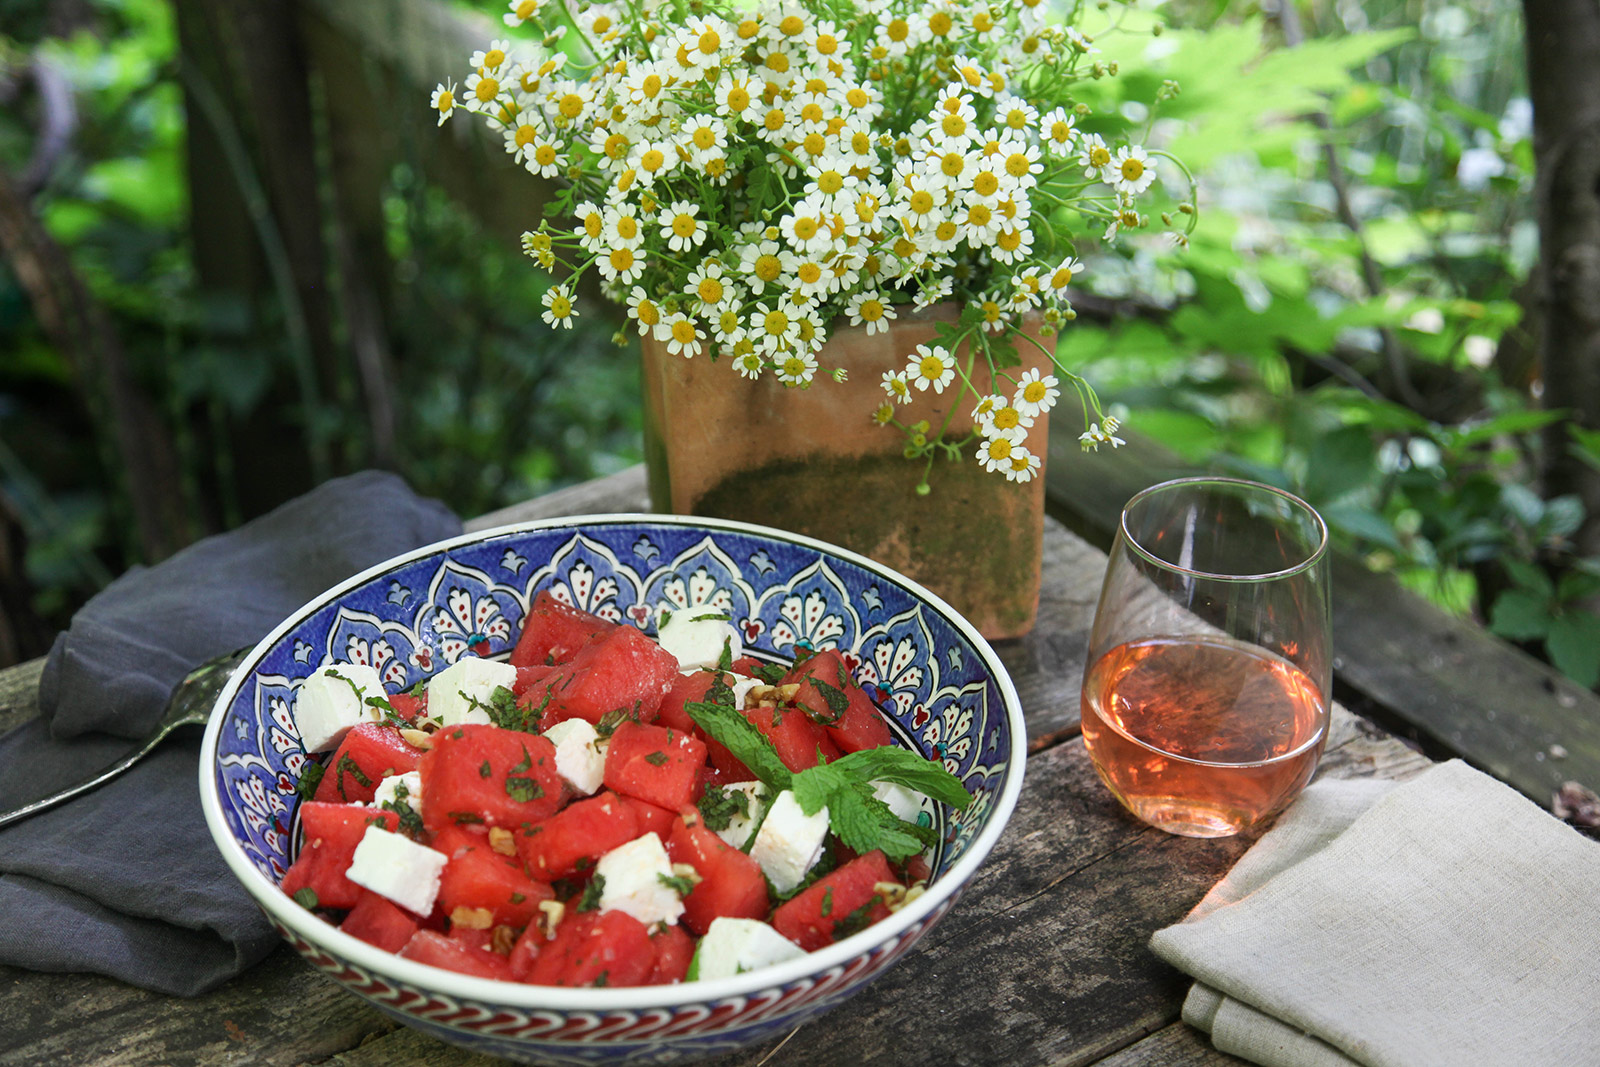 Watermelon Salad with Mint, Feta, Walnuts & a Little Bit of Spicy Kick